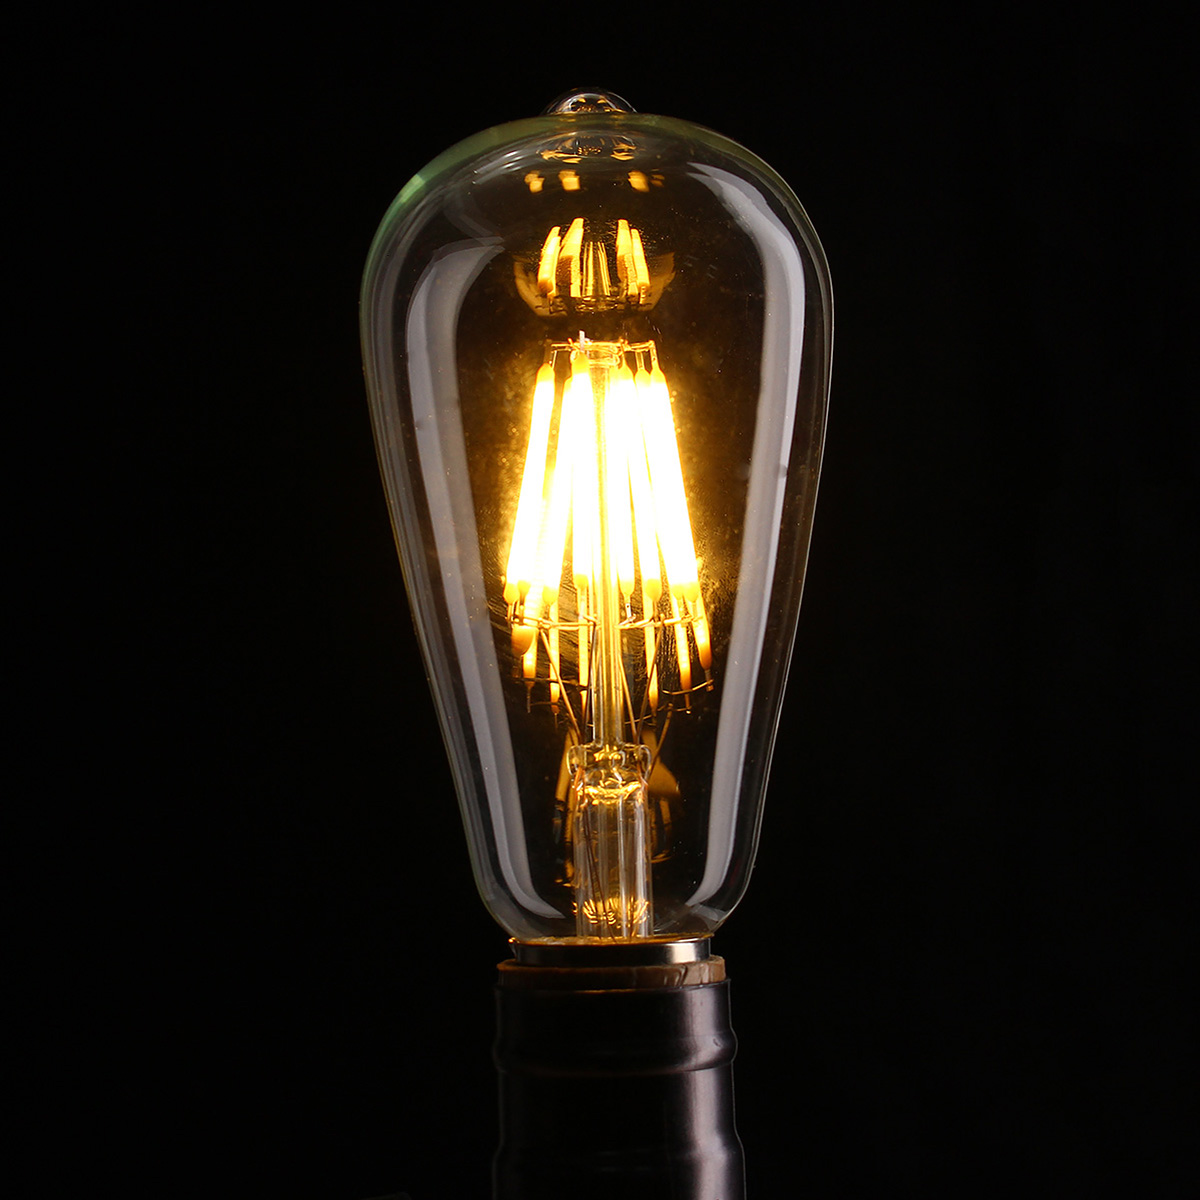 e27 st64 8w clair couvrir dimmable edison r tro vintage filament cob led ampoule lampe ac110. Black Bedroom Furniture Sets. Home Design Ideas